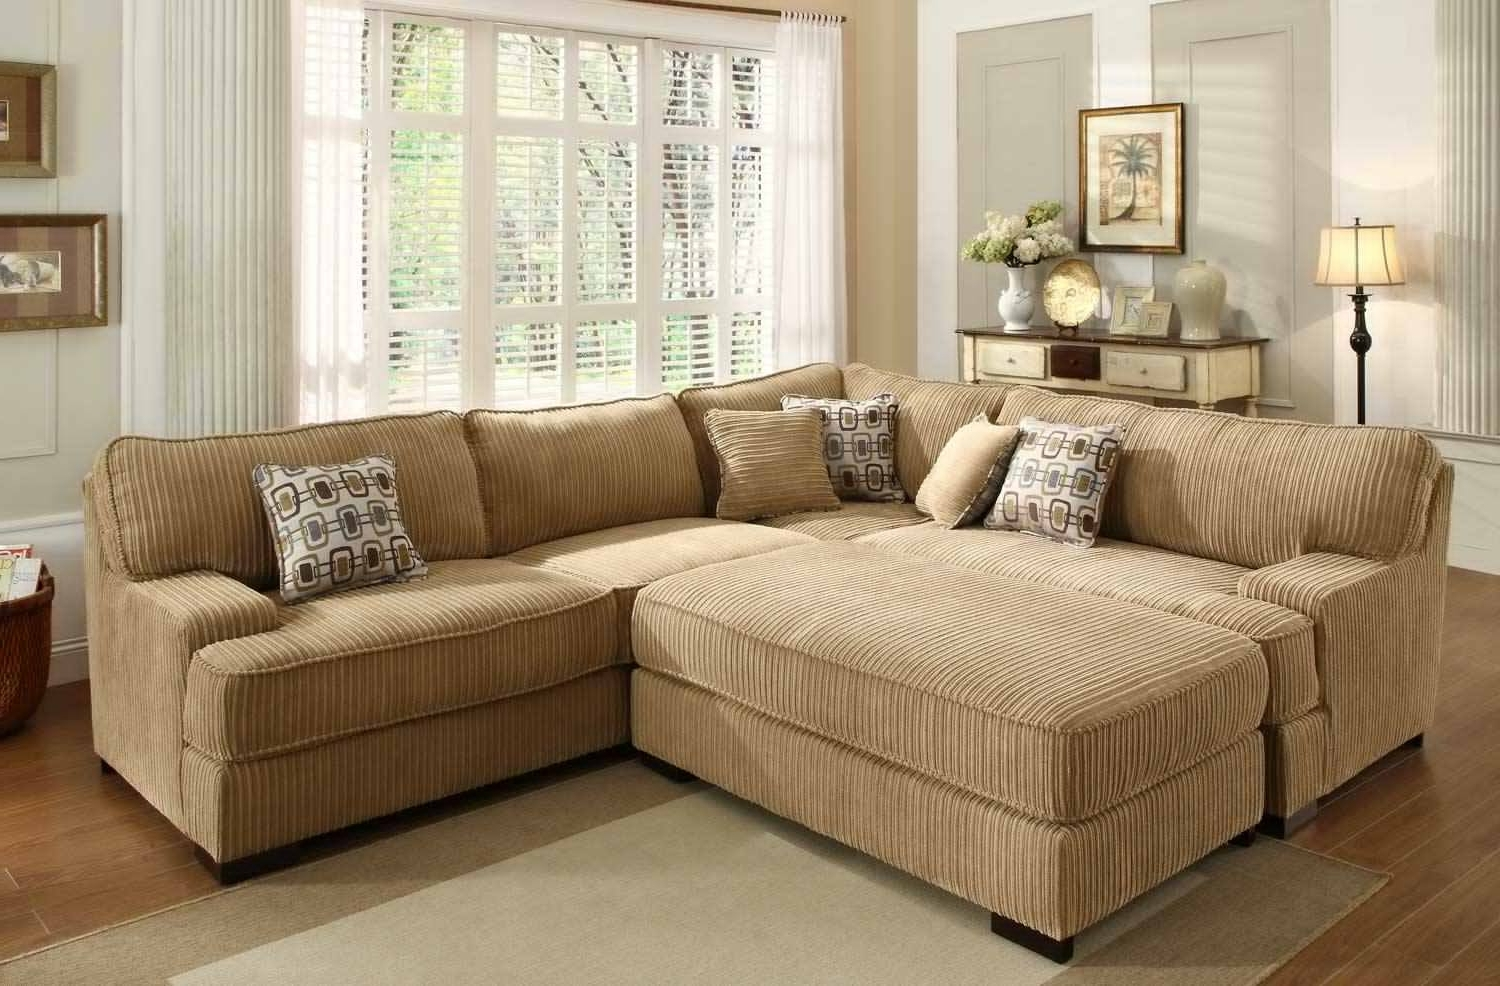 Cozy Sectional Sofas For Famous Sectional Sofa Design: Cozy Sectional Sofas Cheap Couch Recliner (View 8 of 20)